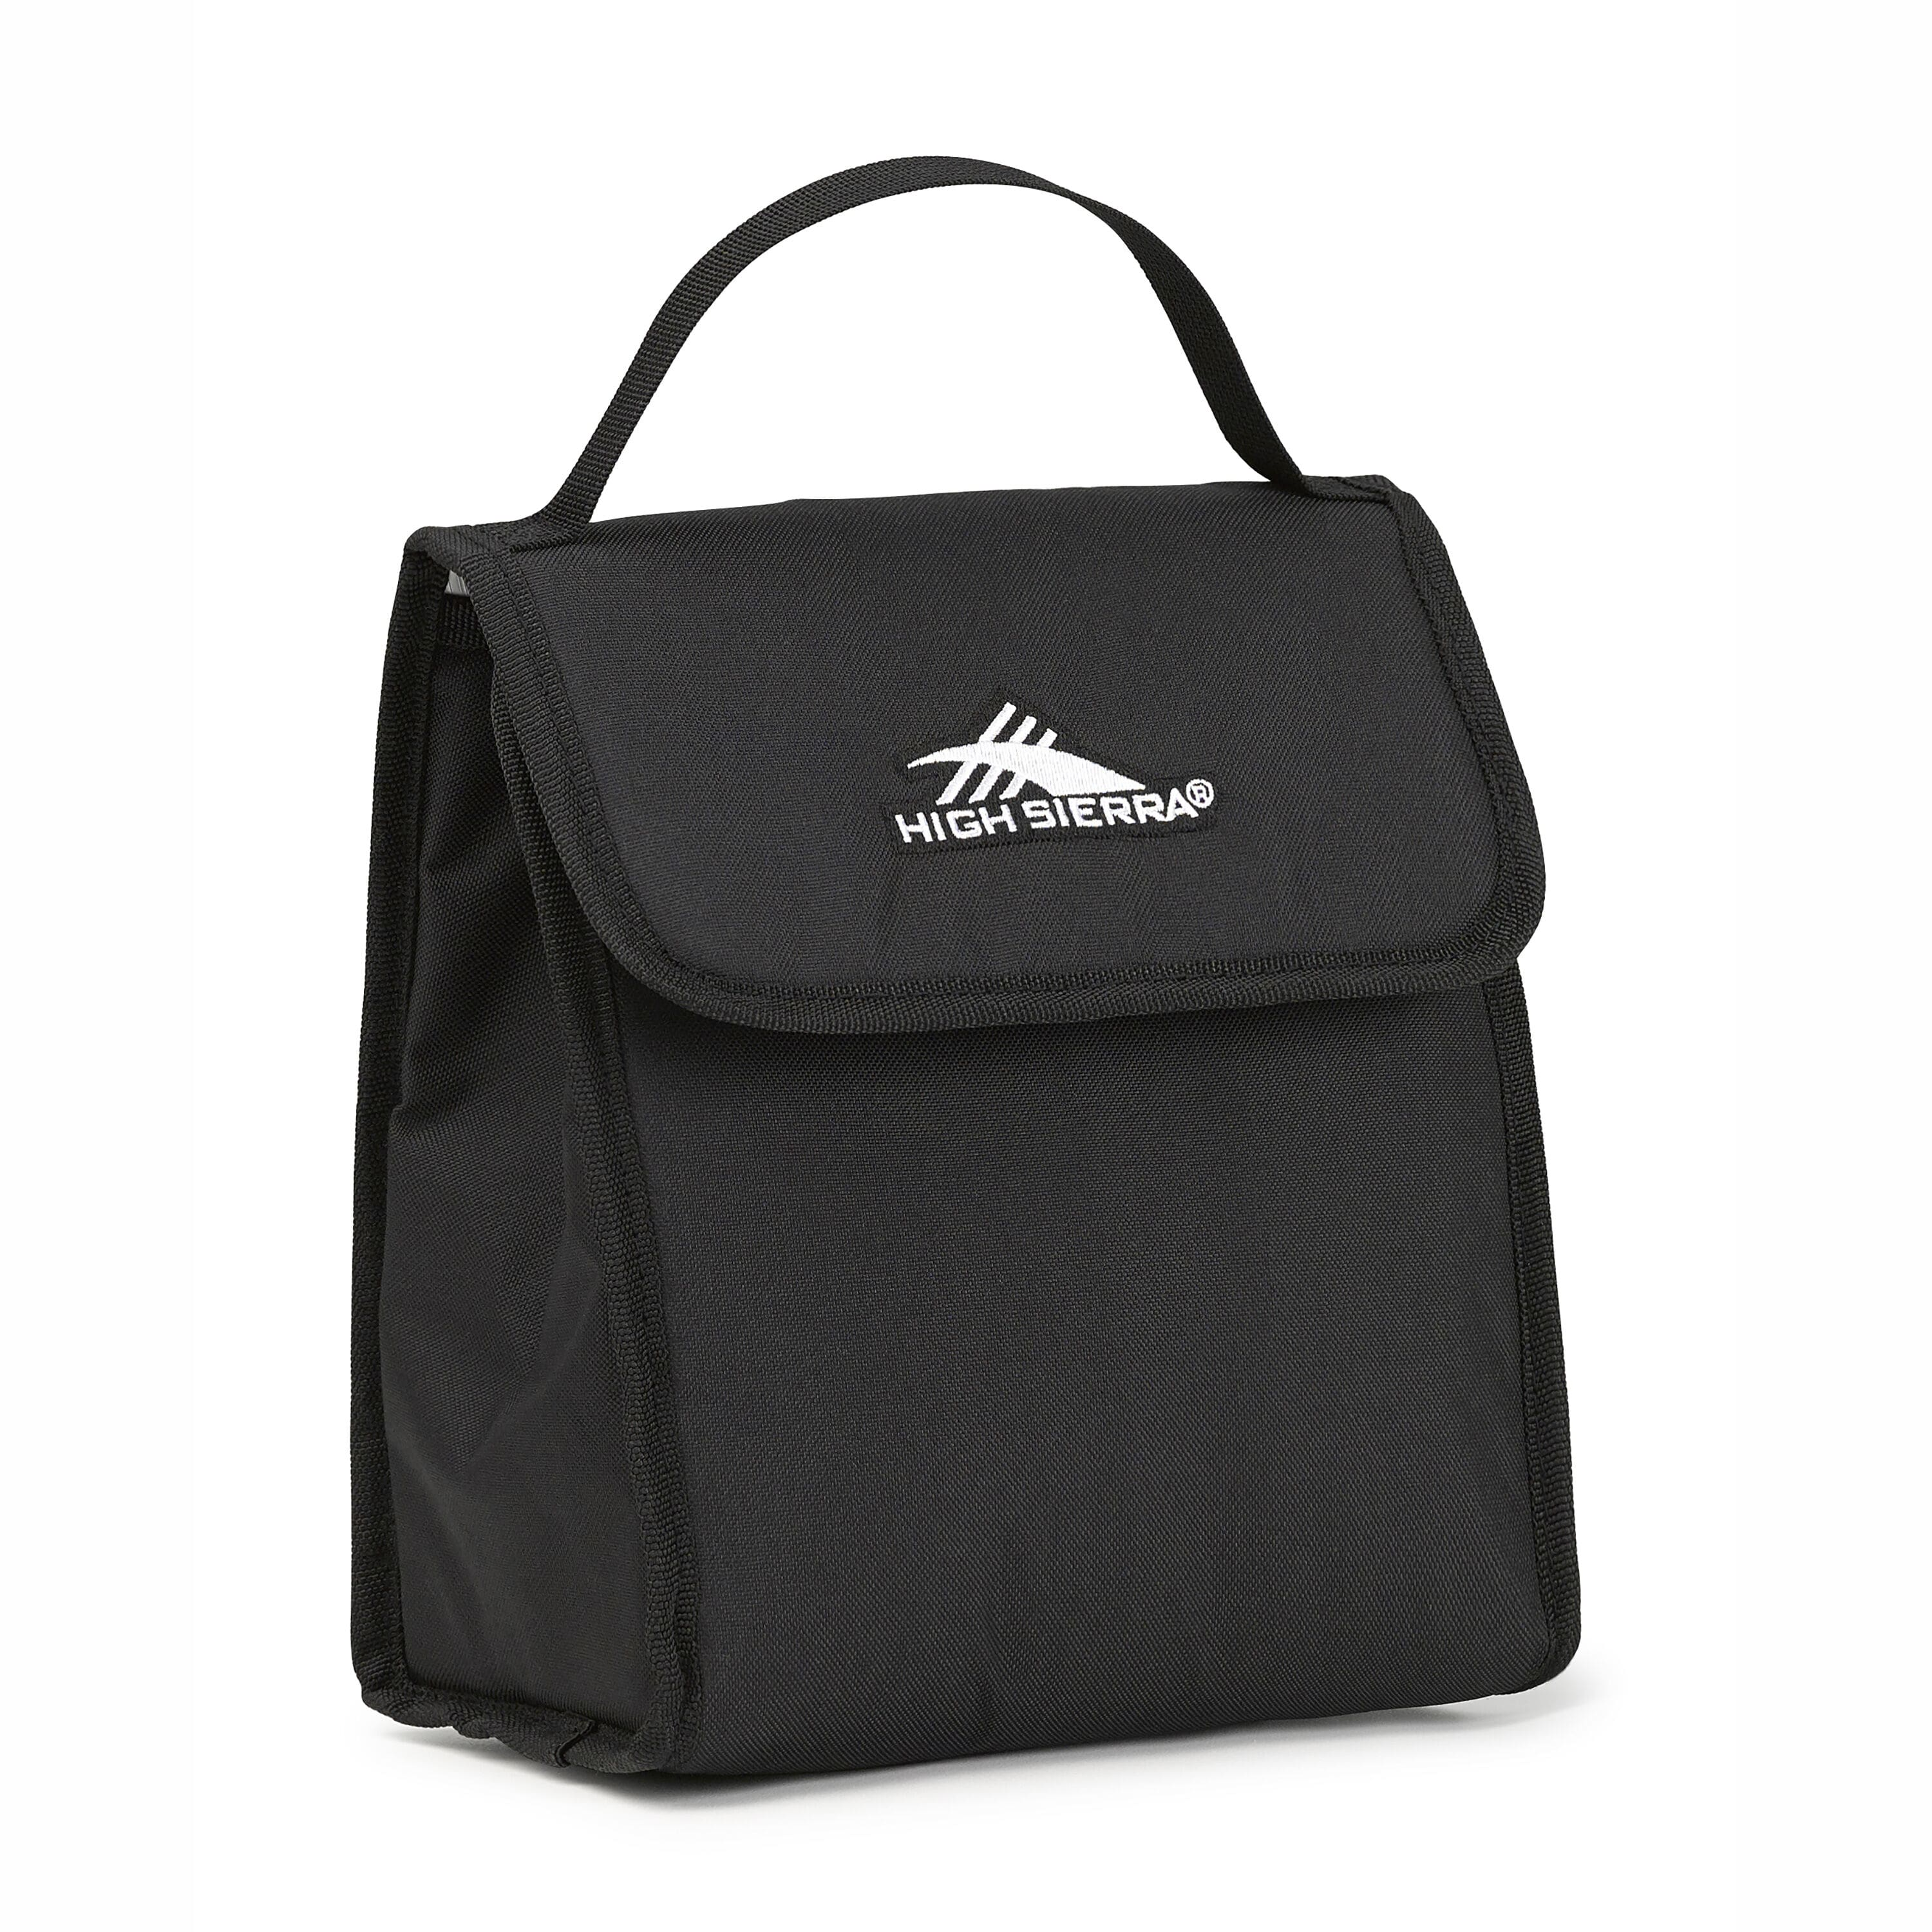 High Sierra: Classic Insulated Lunch Bag $7.20, Insulated Lunch Tote $9, Mini Loop Backpack $12.60 & More + Free Shipping